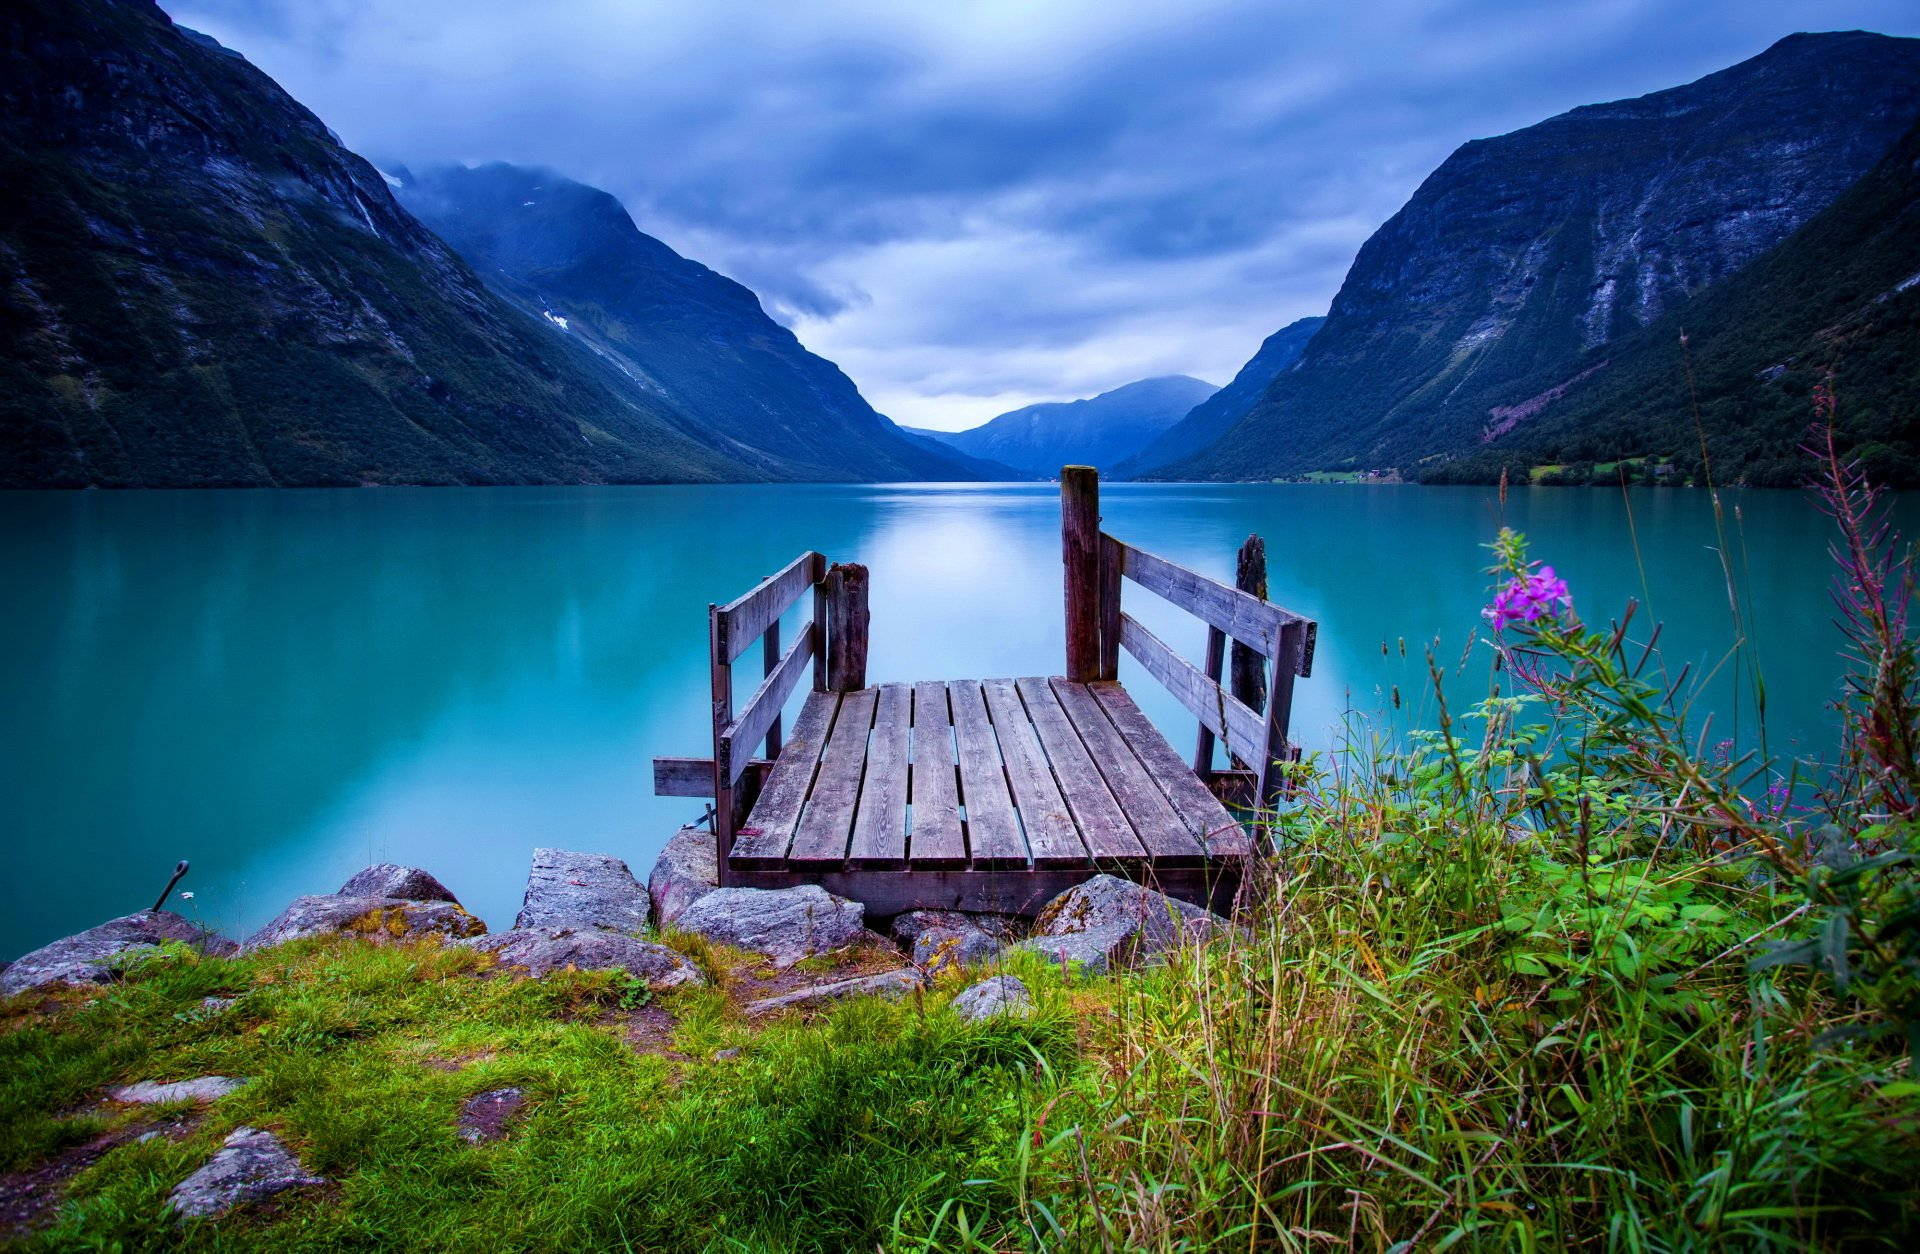 Beautiful Wallpapers For Iphone 6 Plus Dock On Turquoise Lake 4k Ultra Hd Wallpaper Background